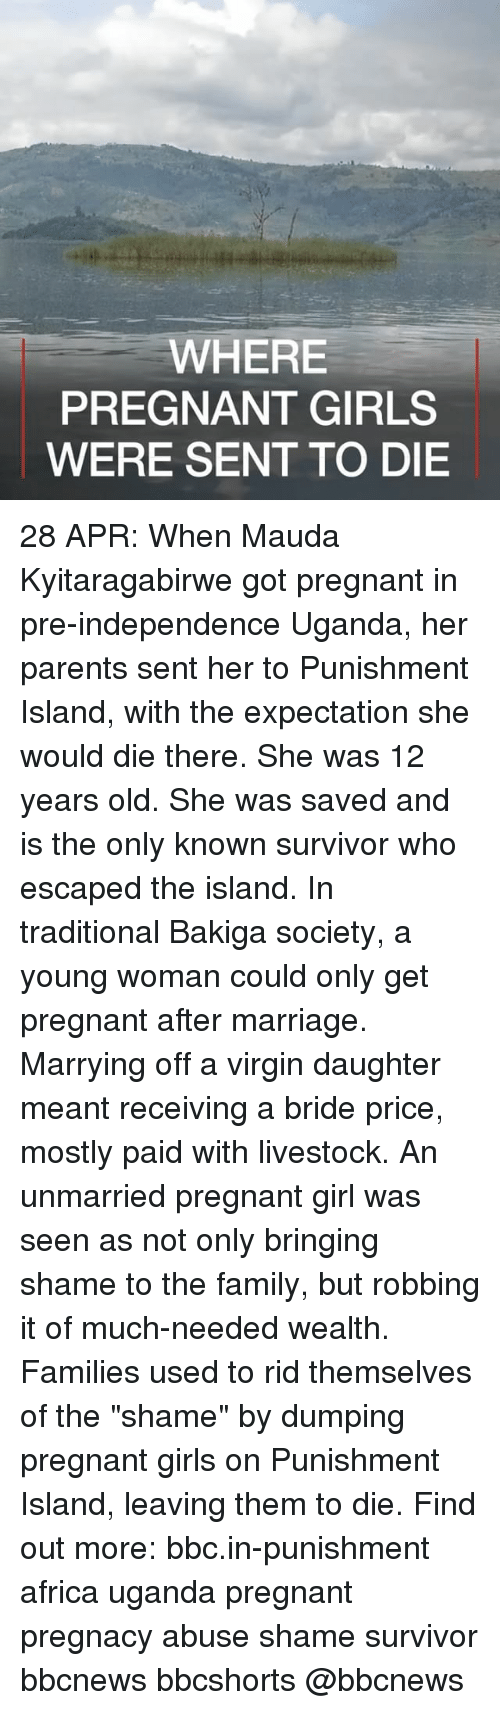 """Africa, Family, and Girls: WHERE  PREGNANT GIRLS  WERE SENT TO DIE 28 APR: When Mauda Kyitaragabirwe got pregnant in pre-independence Uganda, her parents sent her to Punishment Island, with the expectation she would die there. She was 12 years old. She was saved and is the only known survivor who escaped the island. In traditional Bakiga society, a young woman could only get pregnant after marriage. Marrying off a virgin daughter meant receiving a bride price, mostly paid with livestock. An unmarried pregnant girl was seen as not only bringing shame to the family, but robbing it of much-needed wealth. Families used to rid themselves of the """"shame"""" by dumping pregnant girls on Punishment Island, leaving them to die. Find out more: bbc.in-punishment africa uganda pregnant pregnacy abuse shame survivor bbcnews bbcshorts @bbcnews"""